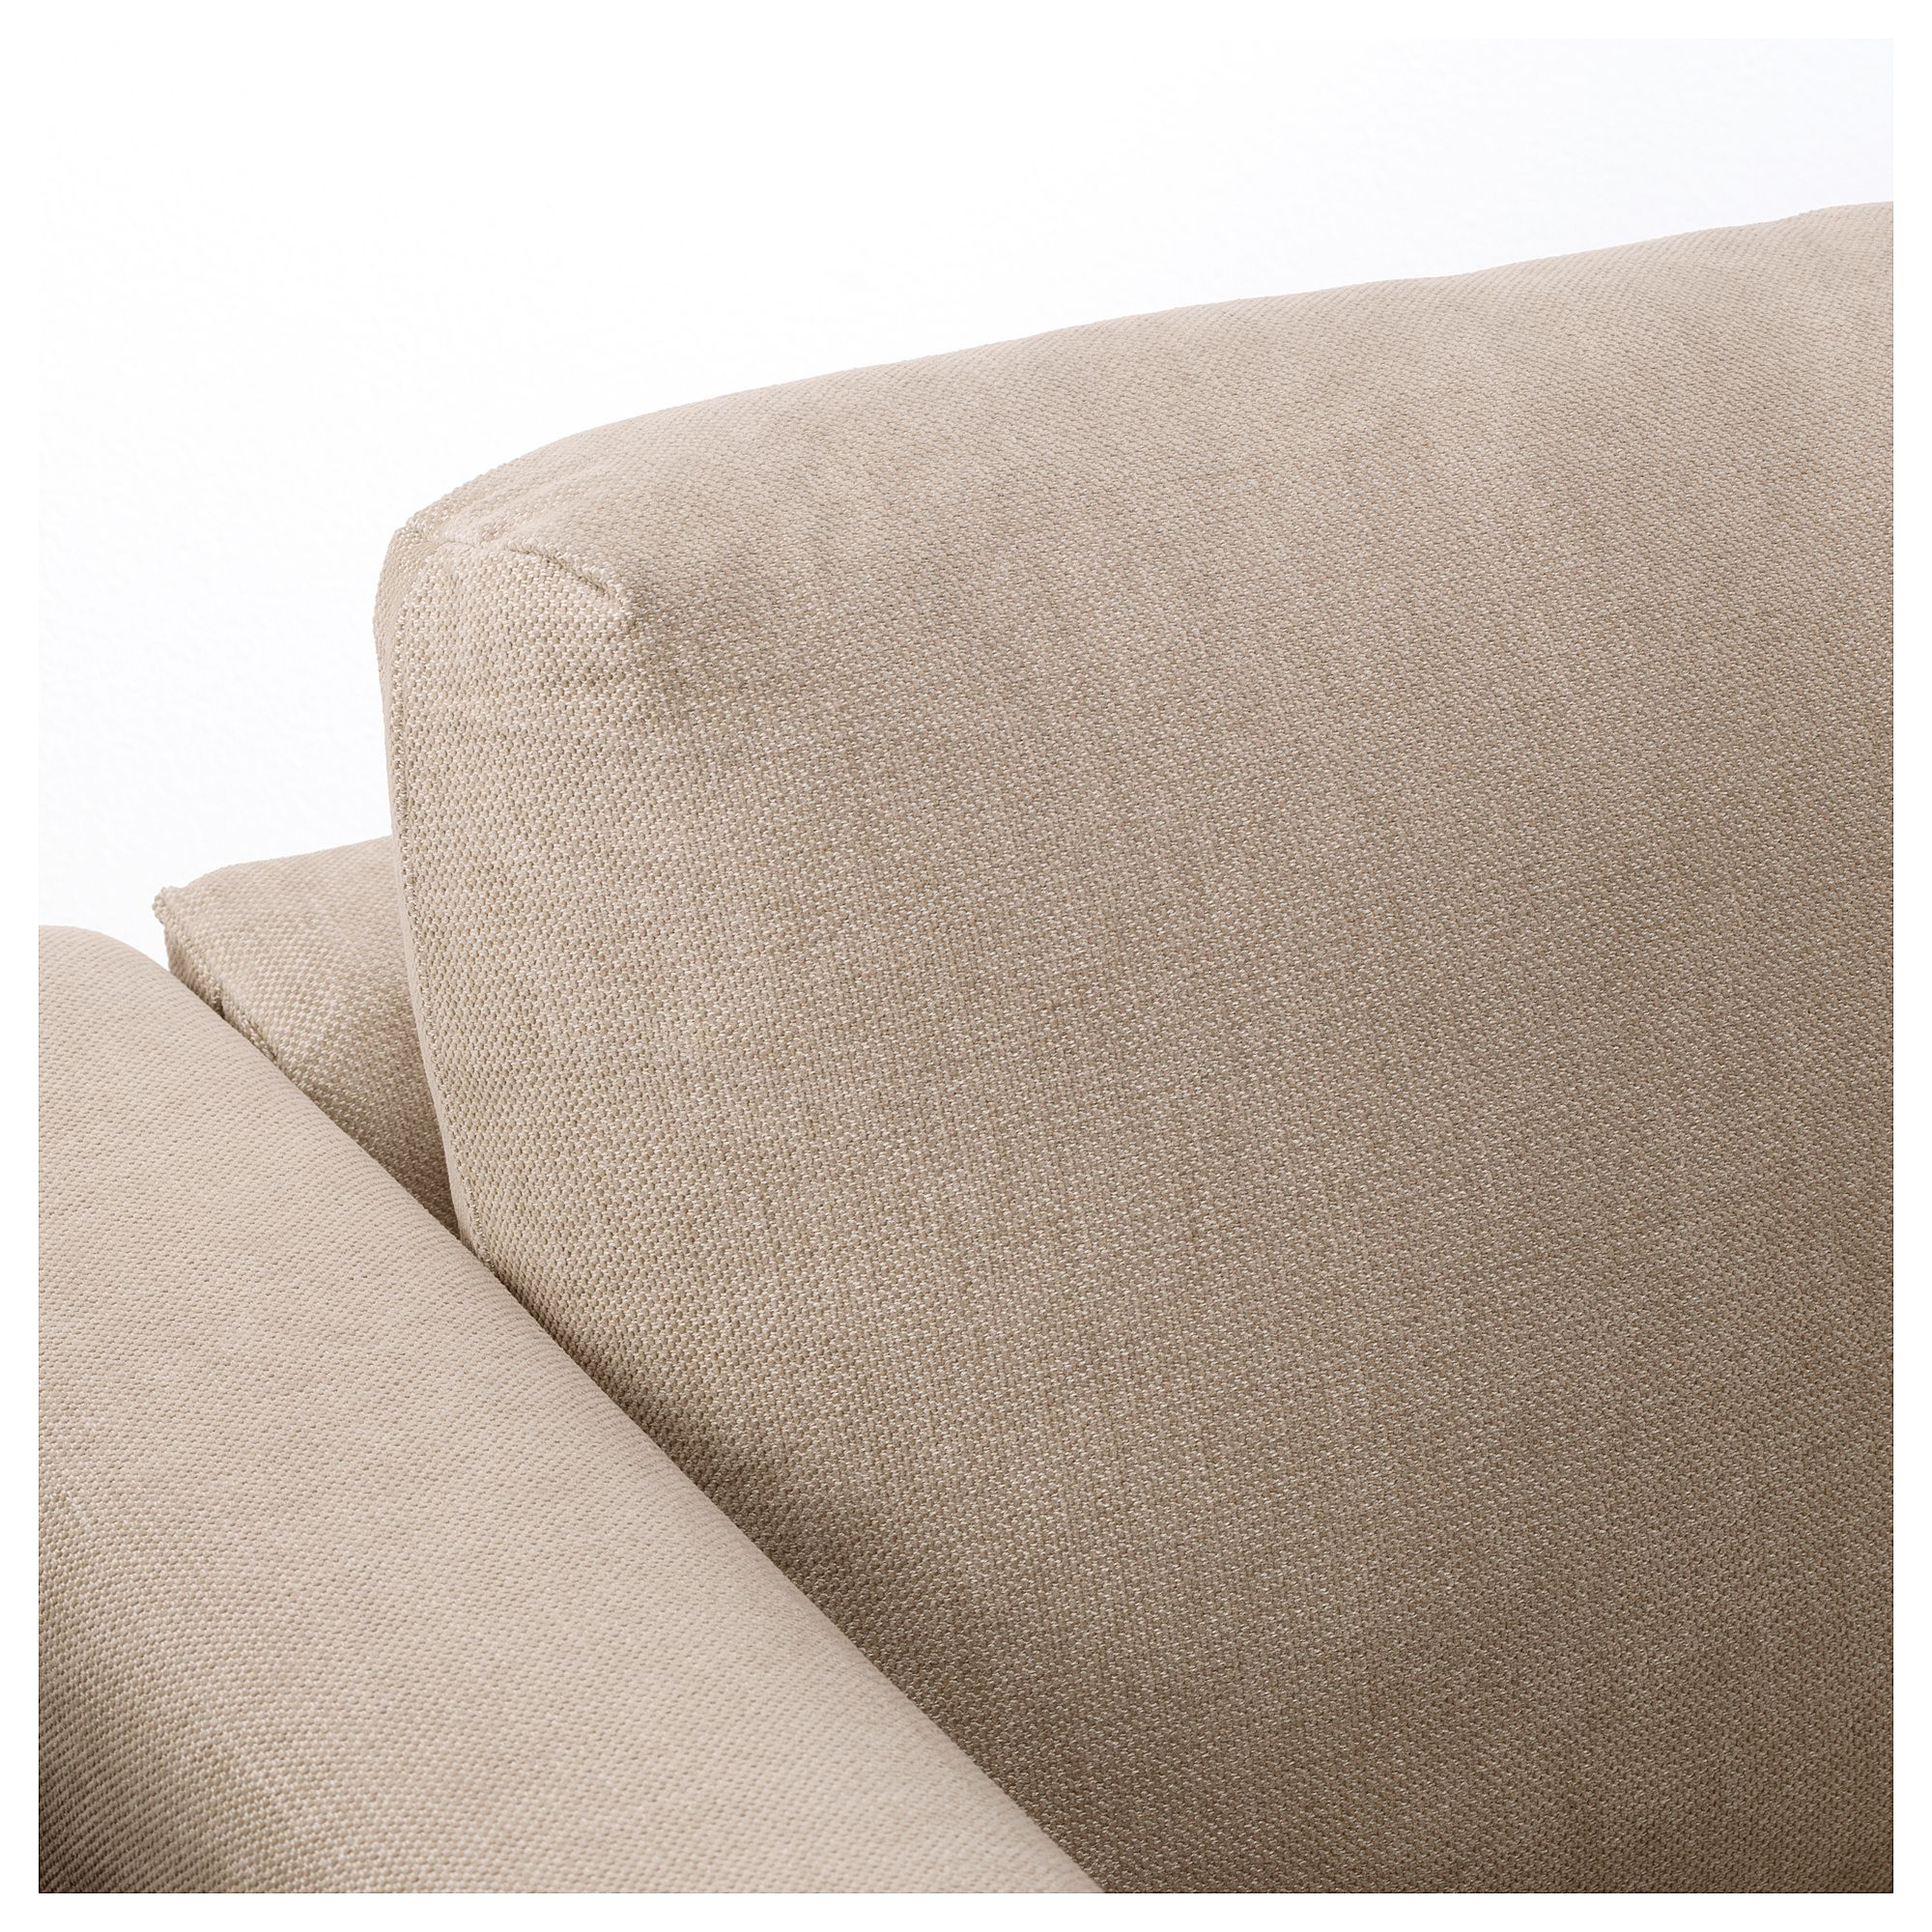 Ikea Vimle Sofa With Chaise Tallmyra Beige Products